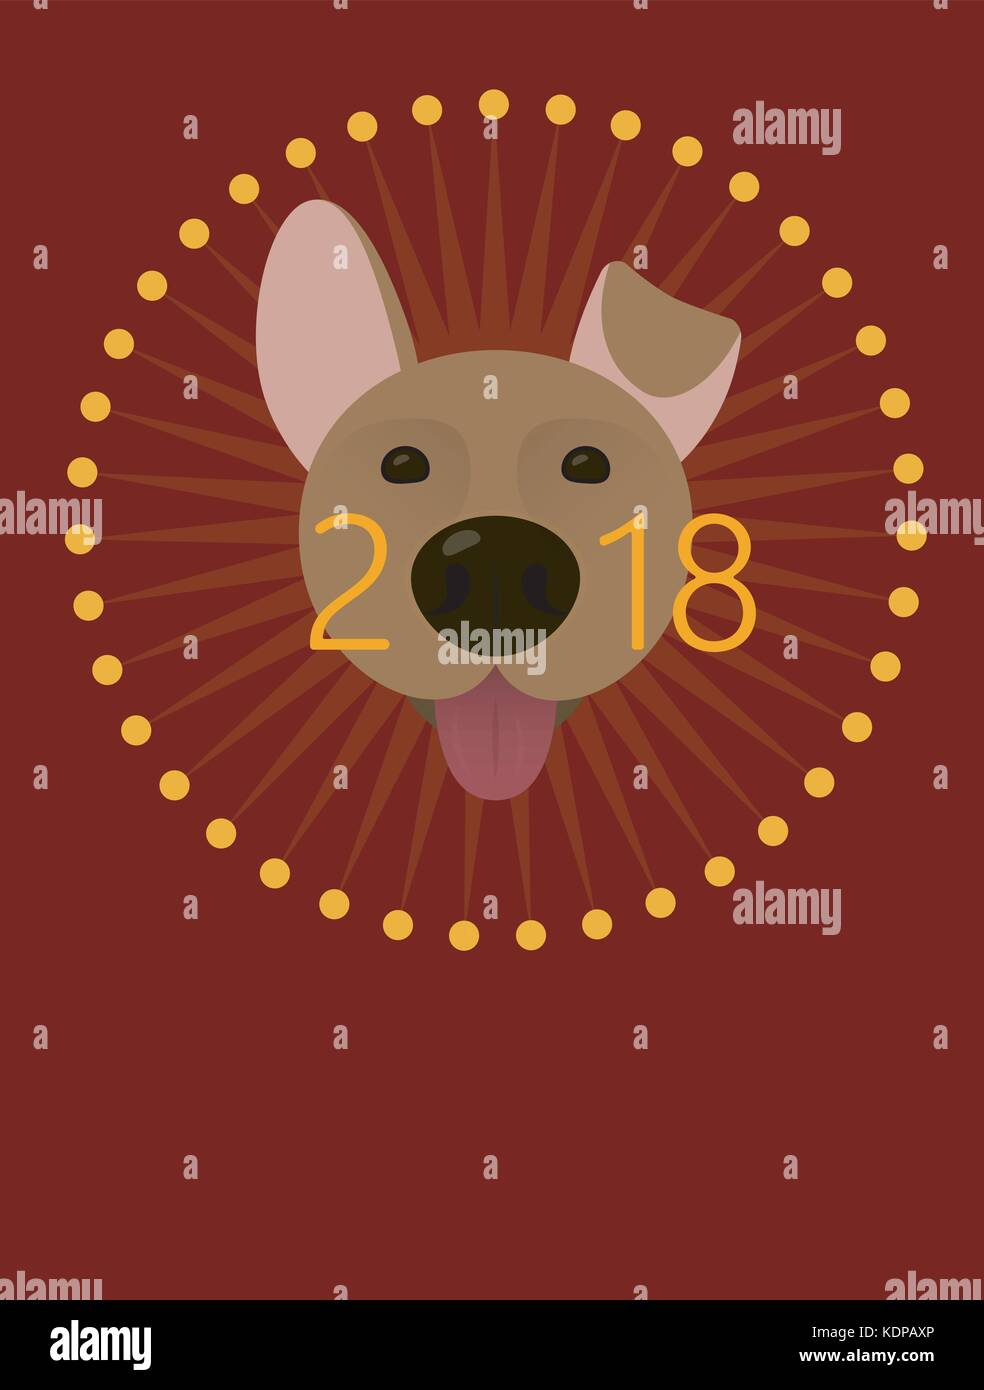 2018 happy new year greeting card poster celebration background with dog 2018 chinese new year of the dog vector illustration